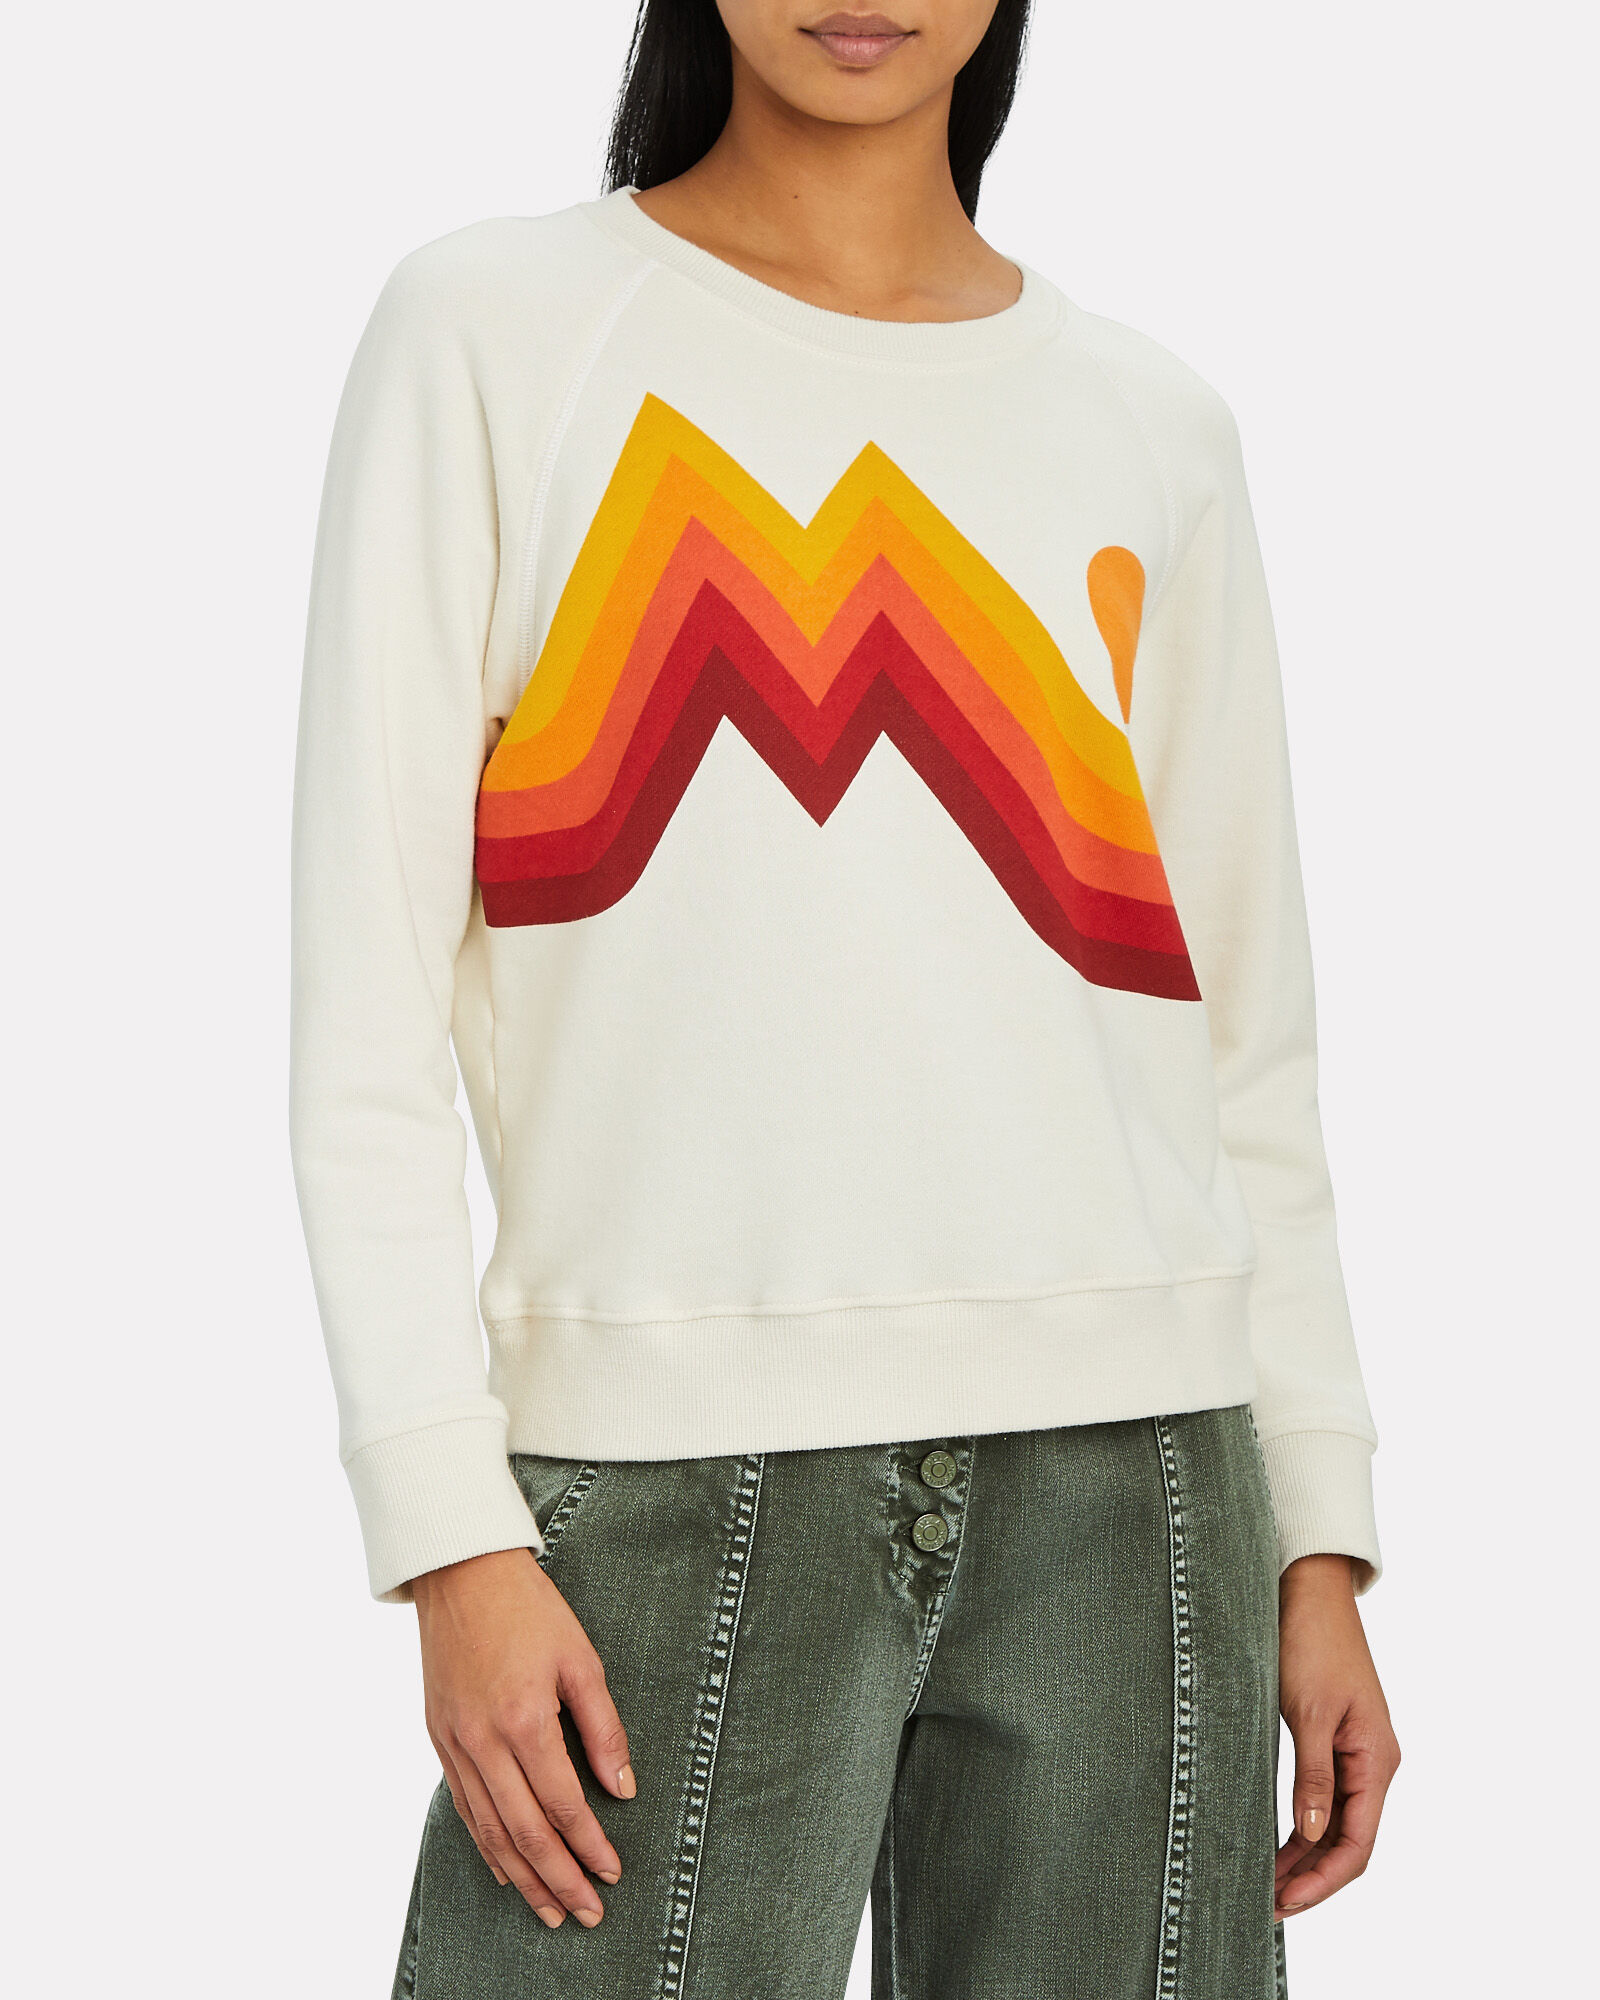 The Square Over Mountain Sweatshirt, IVORY, hi-res